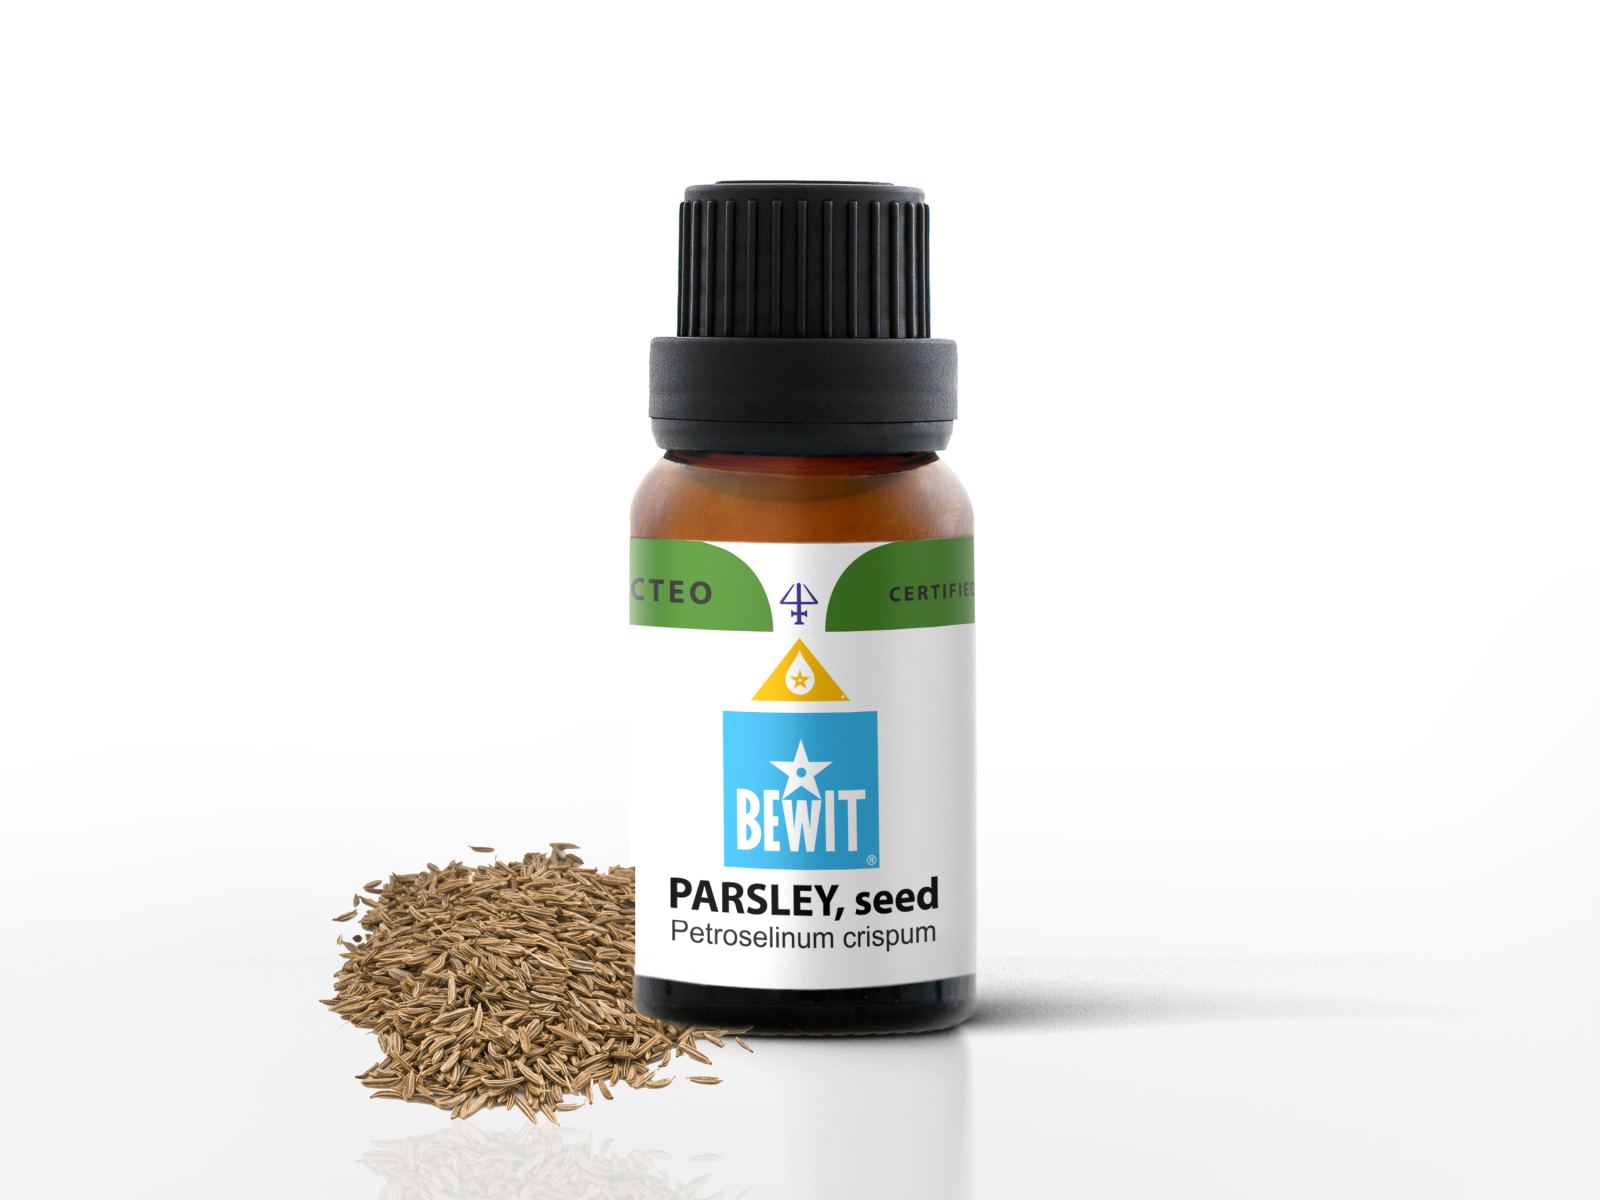 Parsley, seed